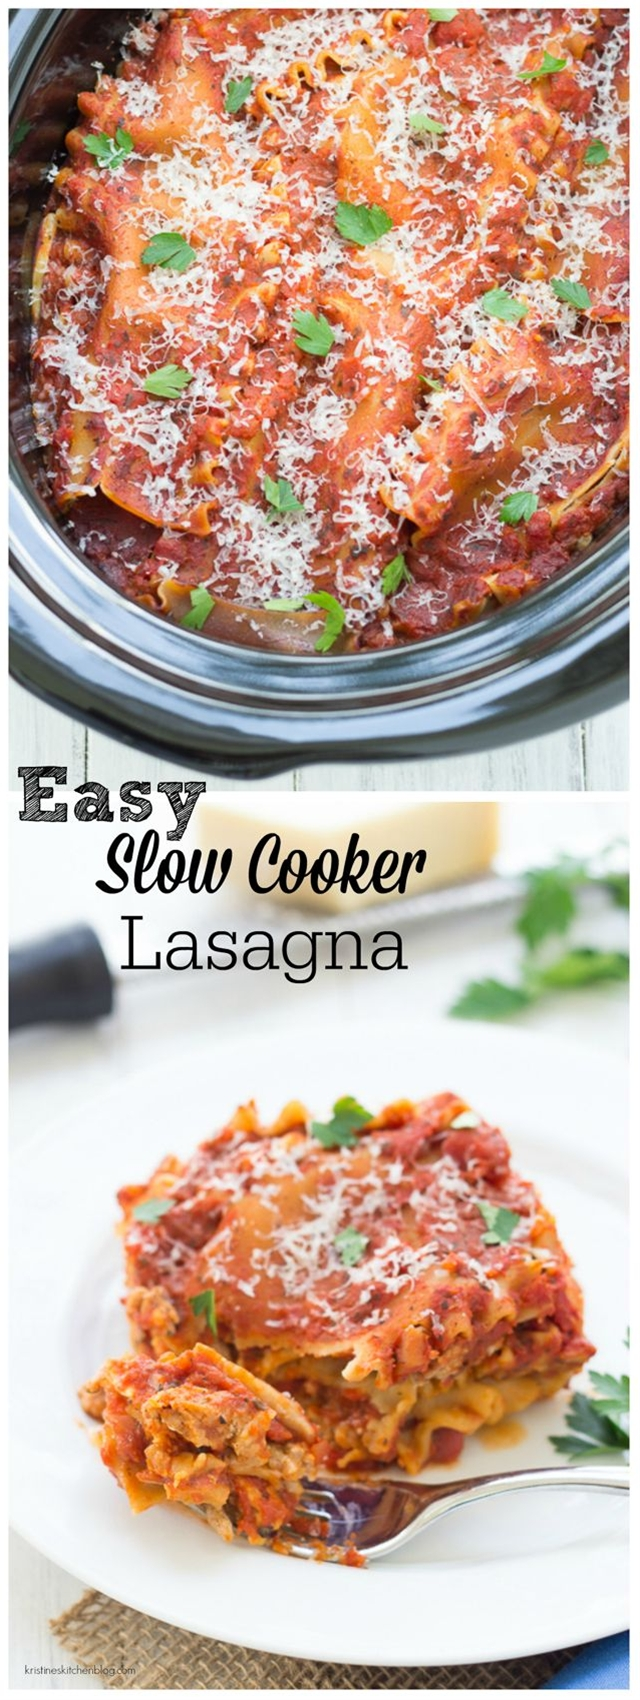 Only 20 minutes prep and then the crock pot does the rest!\n\n Ingredients\n 1 tbsp. olive oil\n 1 medium onion, chopped\n 4 cloves garlic, minced\n 1.25 lbs. ground beef or ground turkey\n 2 (26 oz. each) jars your favorite marinara sauce 10 lasagna noodles (uncooked)\n 2 cups grated mozzarella cheese\n Grated Parmesan cheese, for serving\n Fresh chopped parsley or basil, for serving, if desired